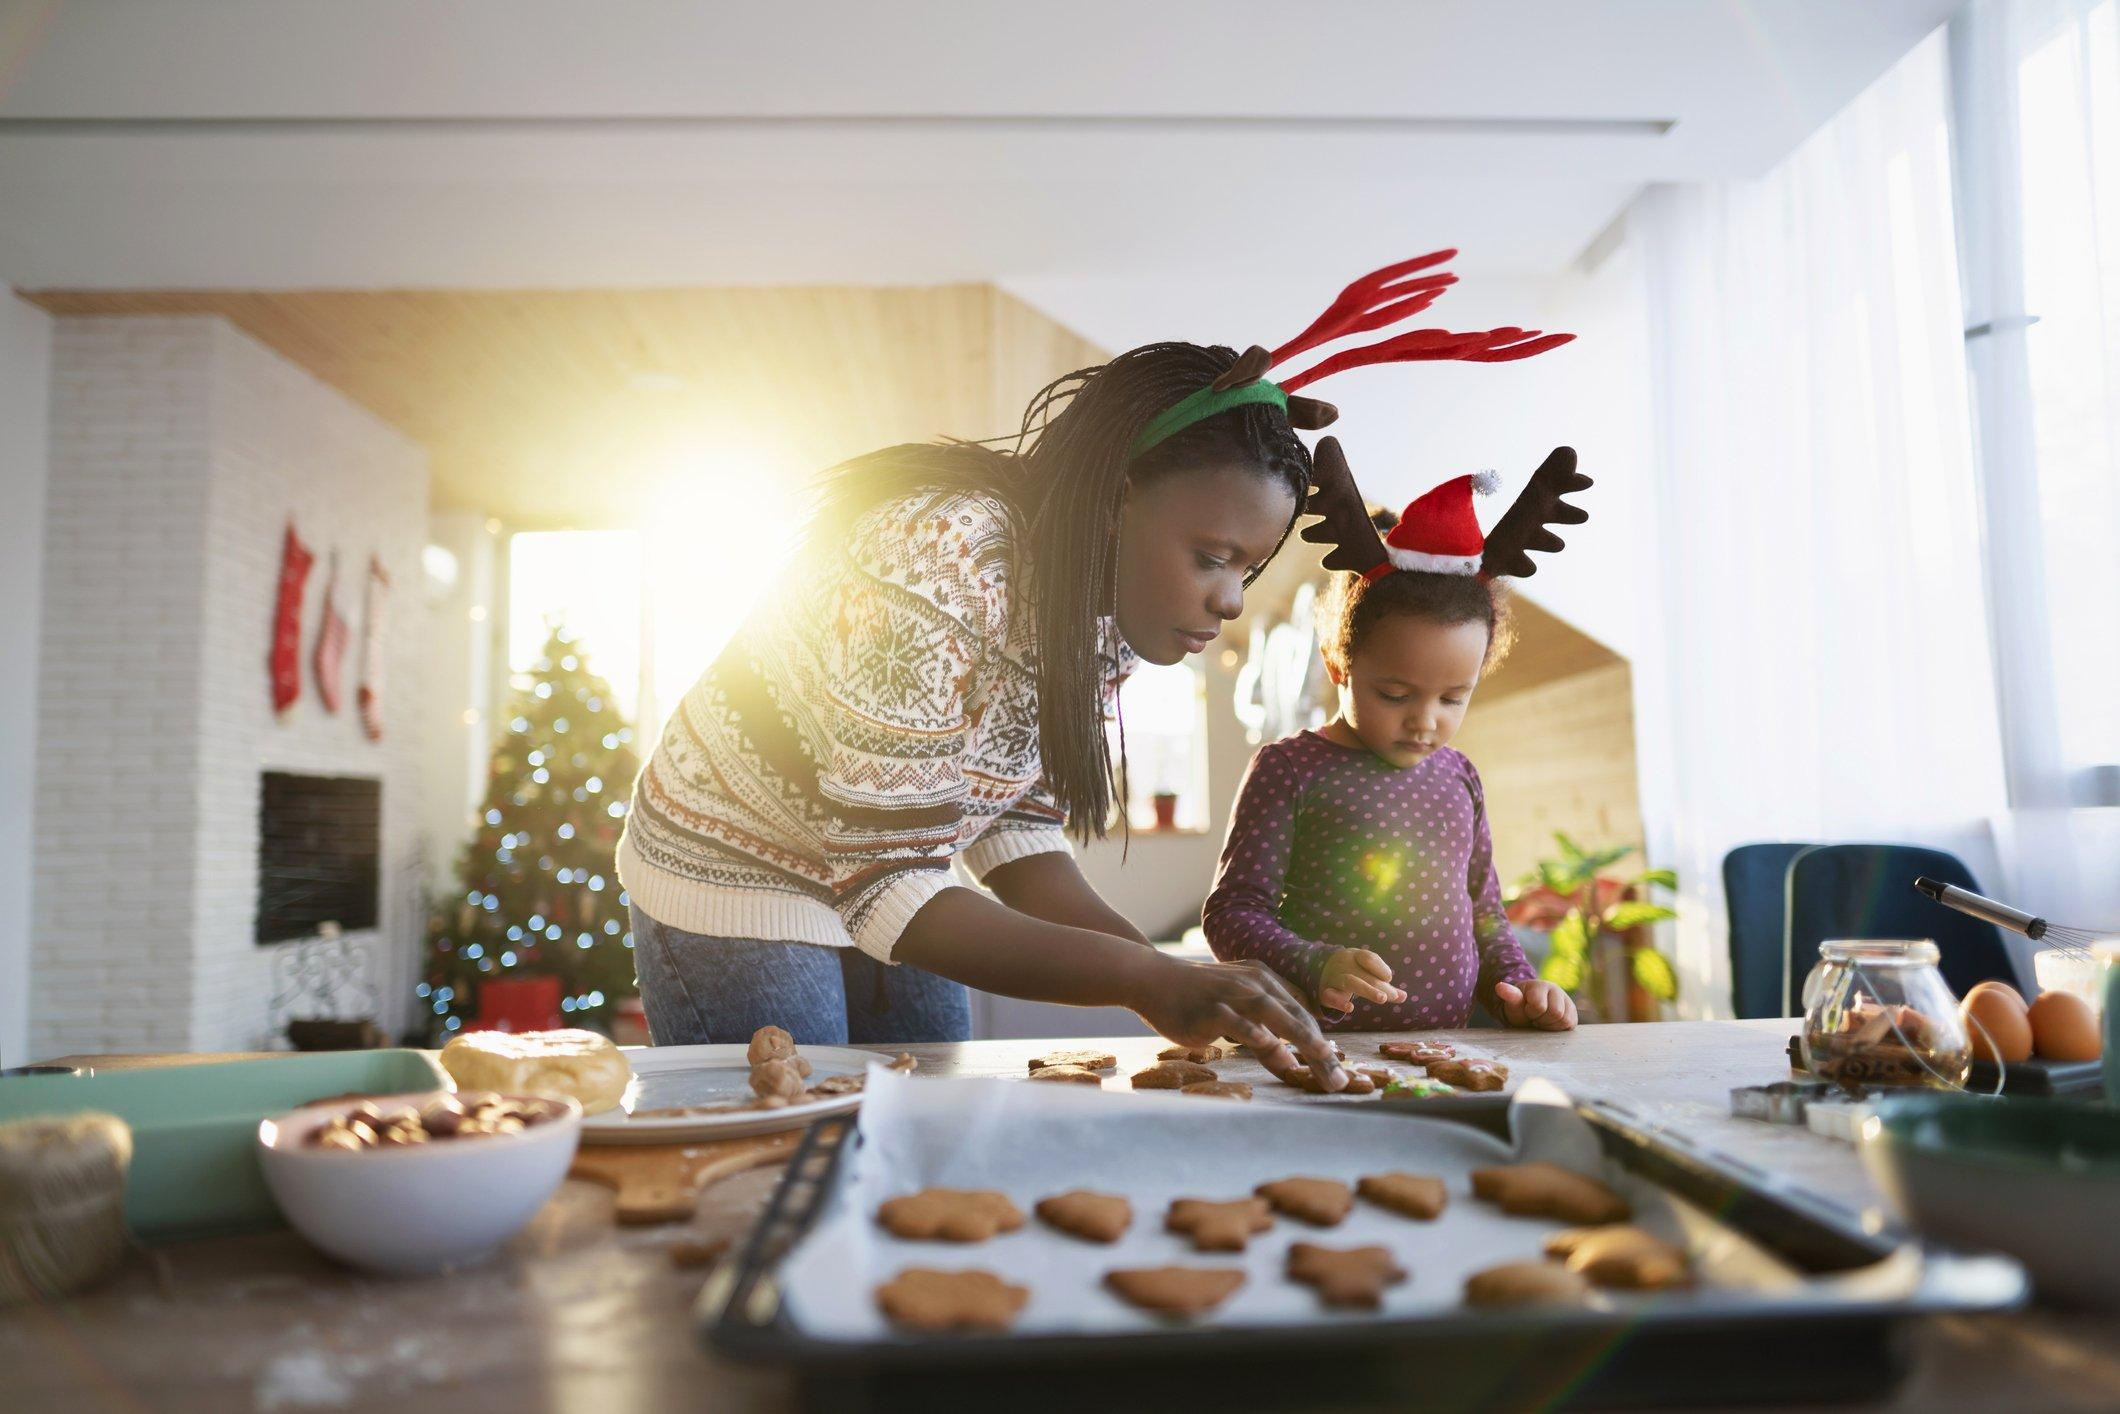 Inspiring ideas to create festive cheer at home during the pandemic